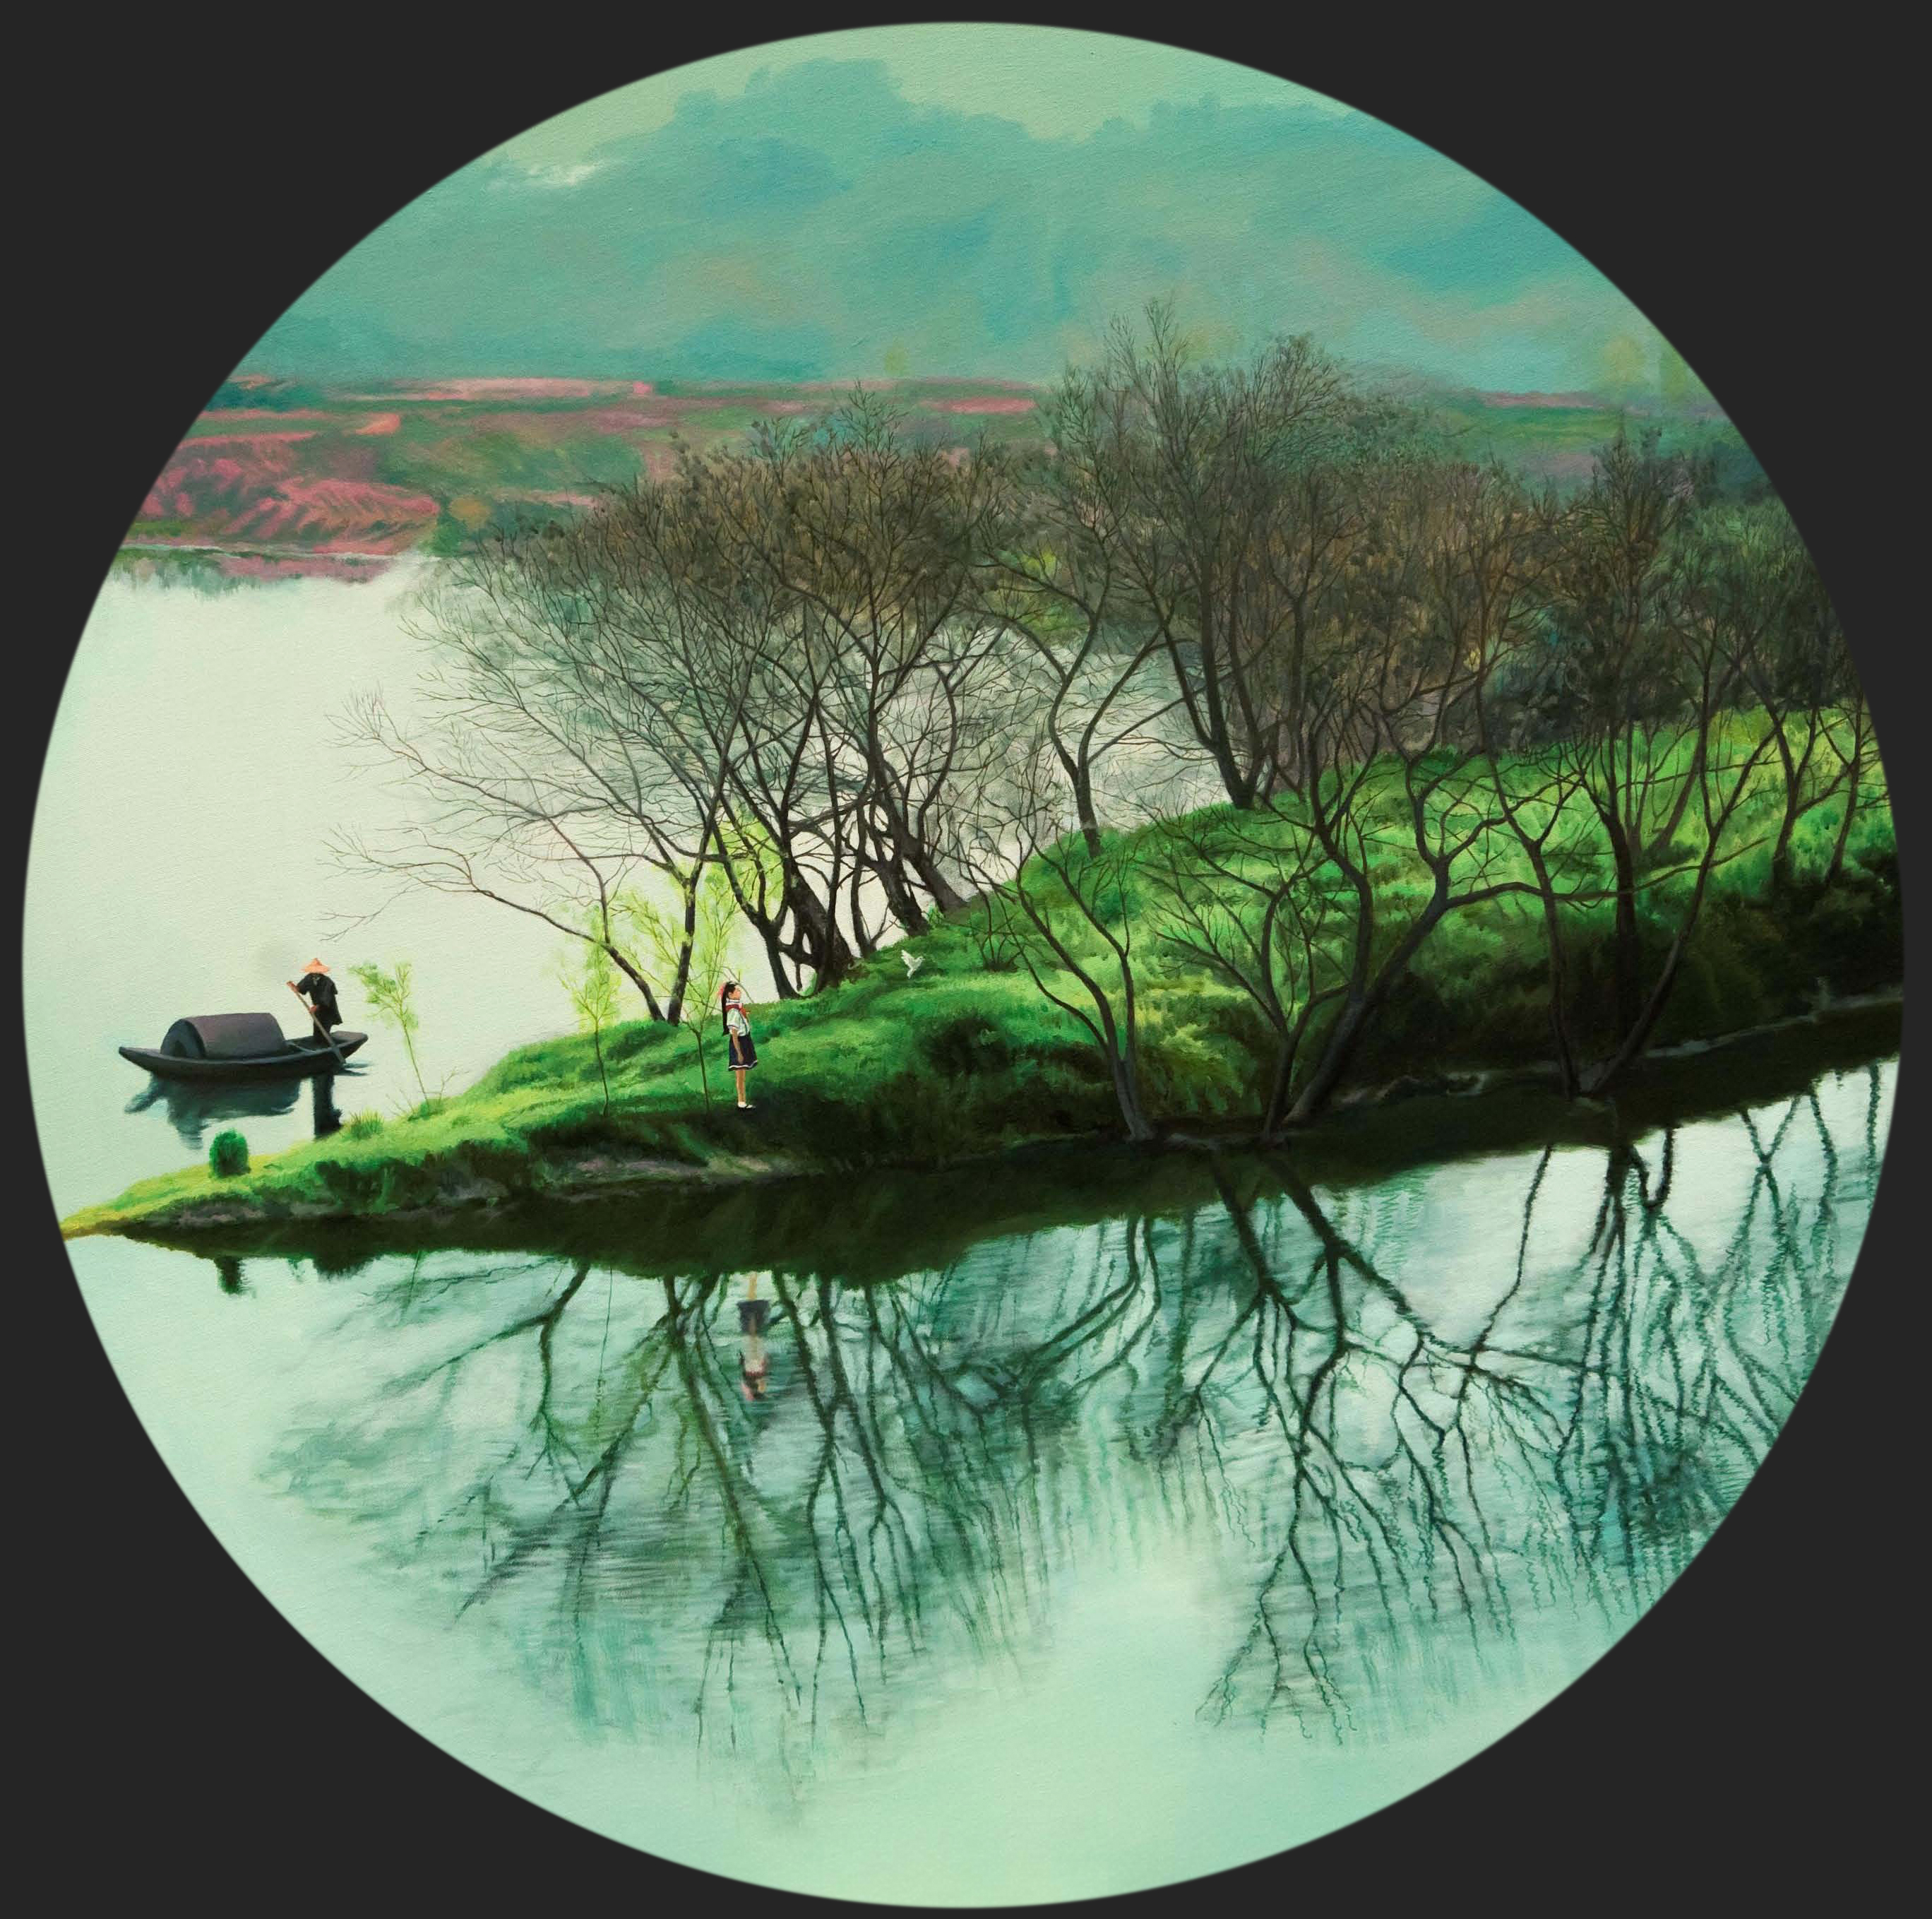 THEY  | In Between the Water and Cloud | oil on canvas | diameter 120cm | 2010